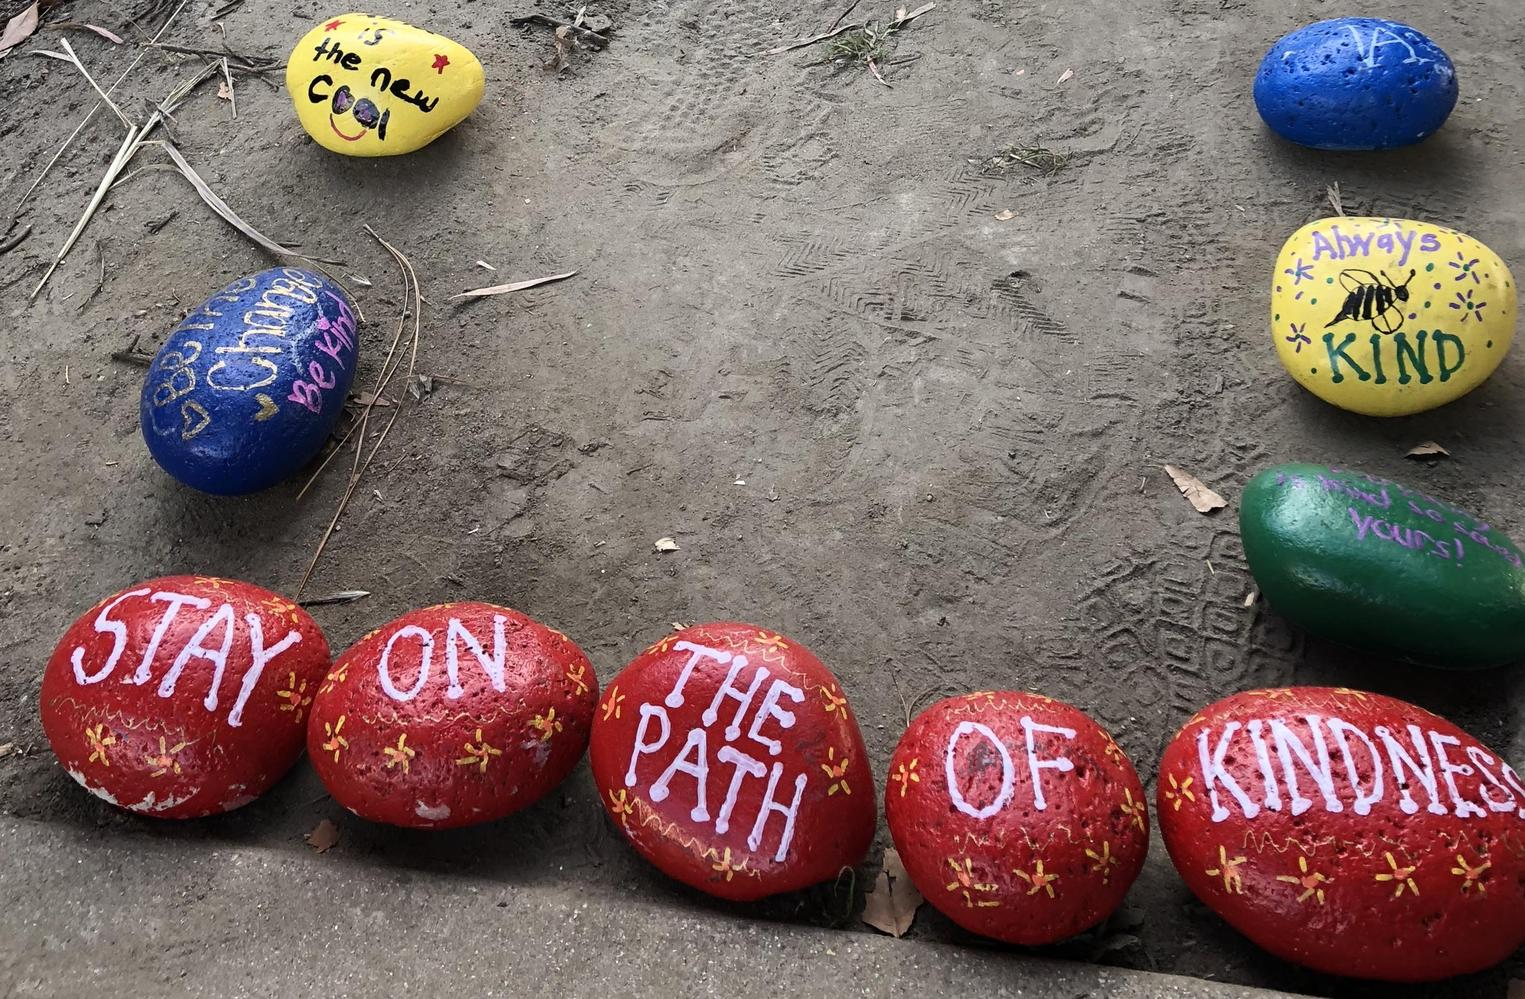 Elliott message on painted rocks